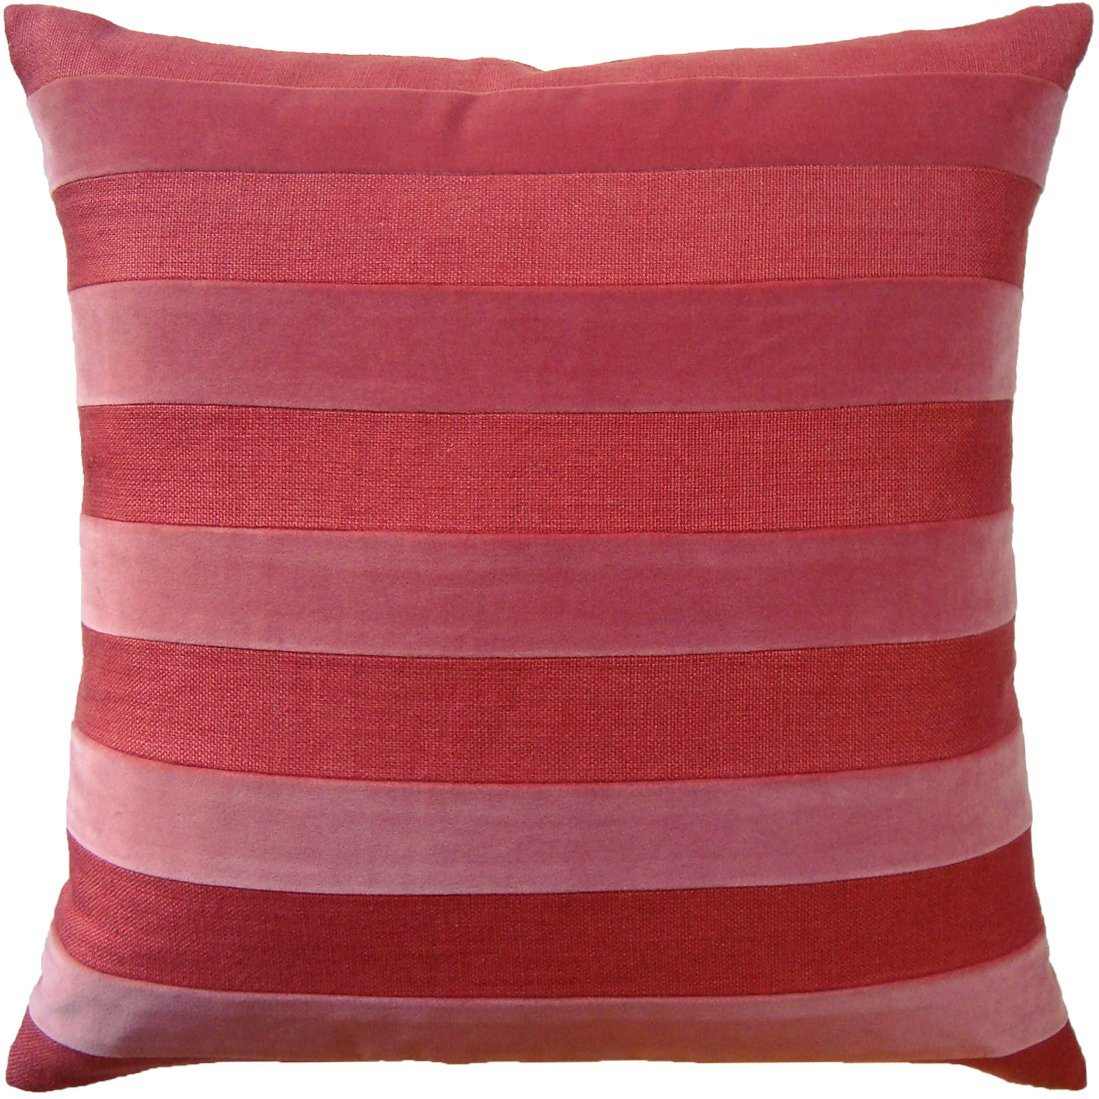 Parker Stripe Spice Pillow | Shop Ryan Studio Pillows at Fig Linens